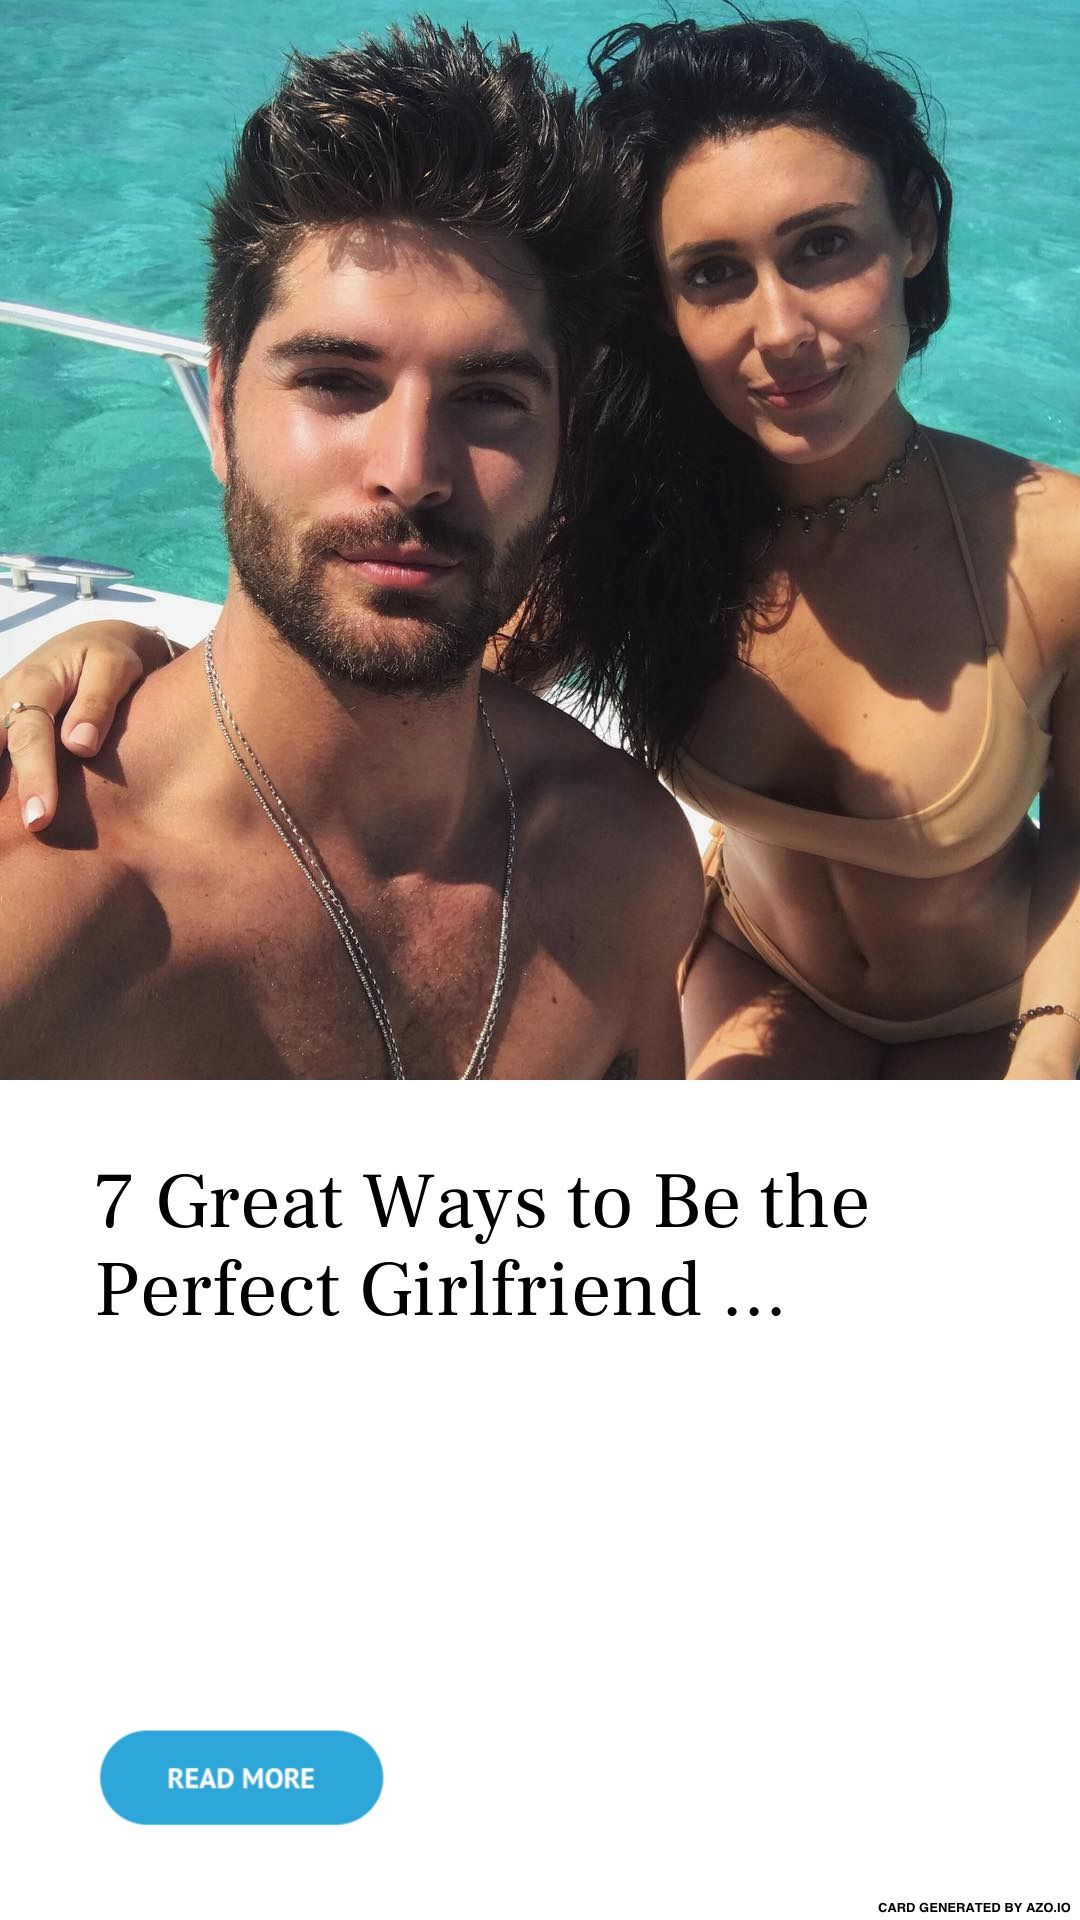 Ways to be the perfect girlfriend